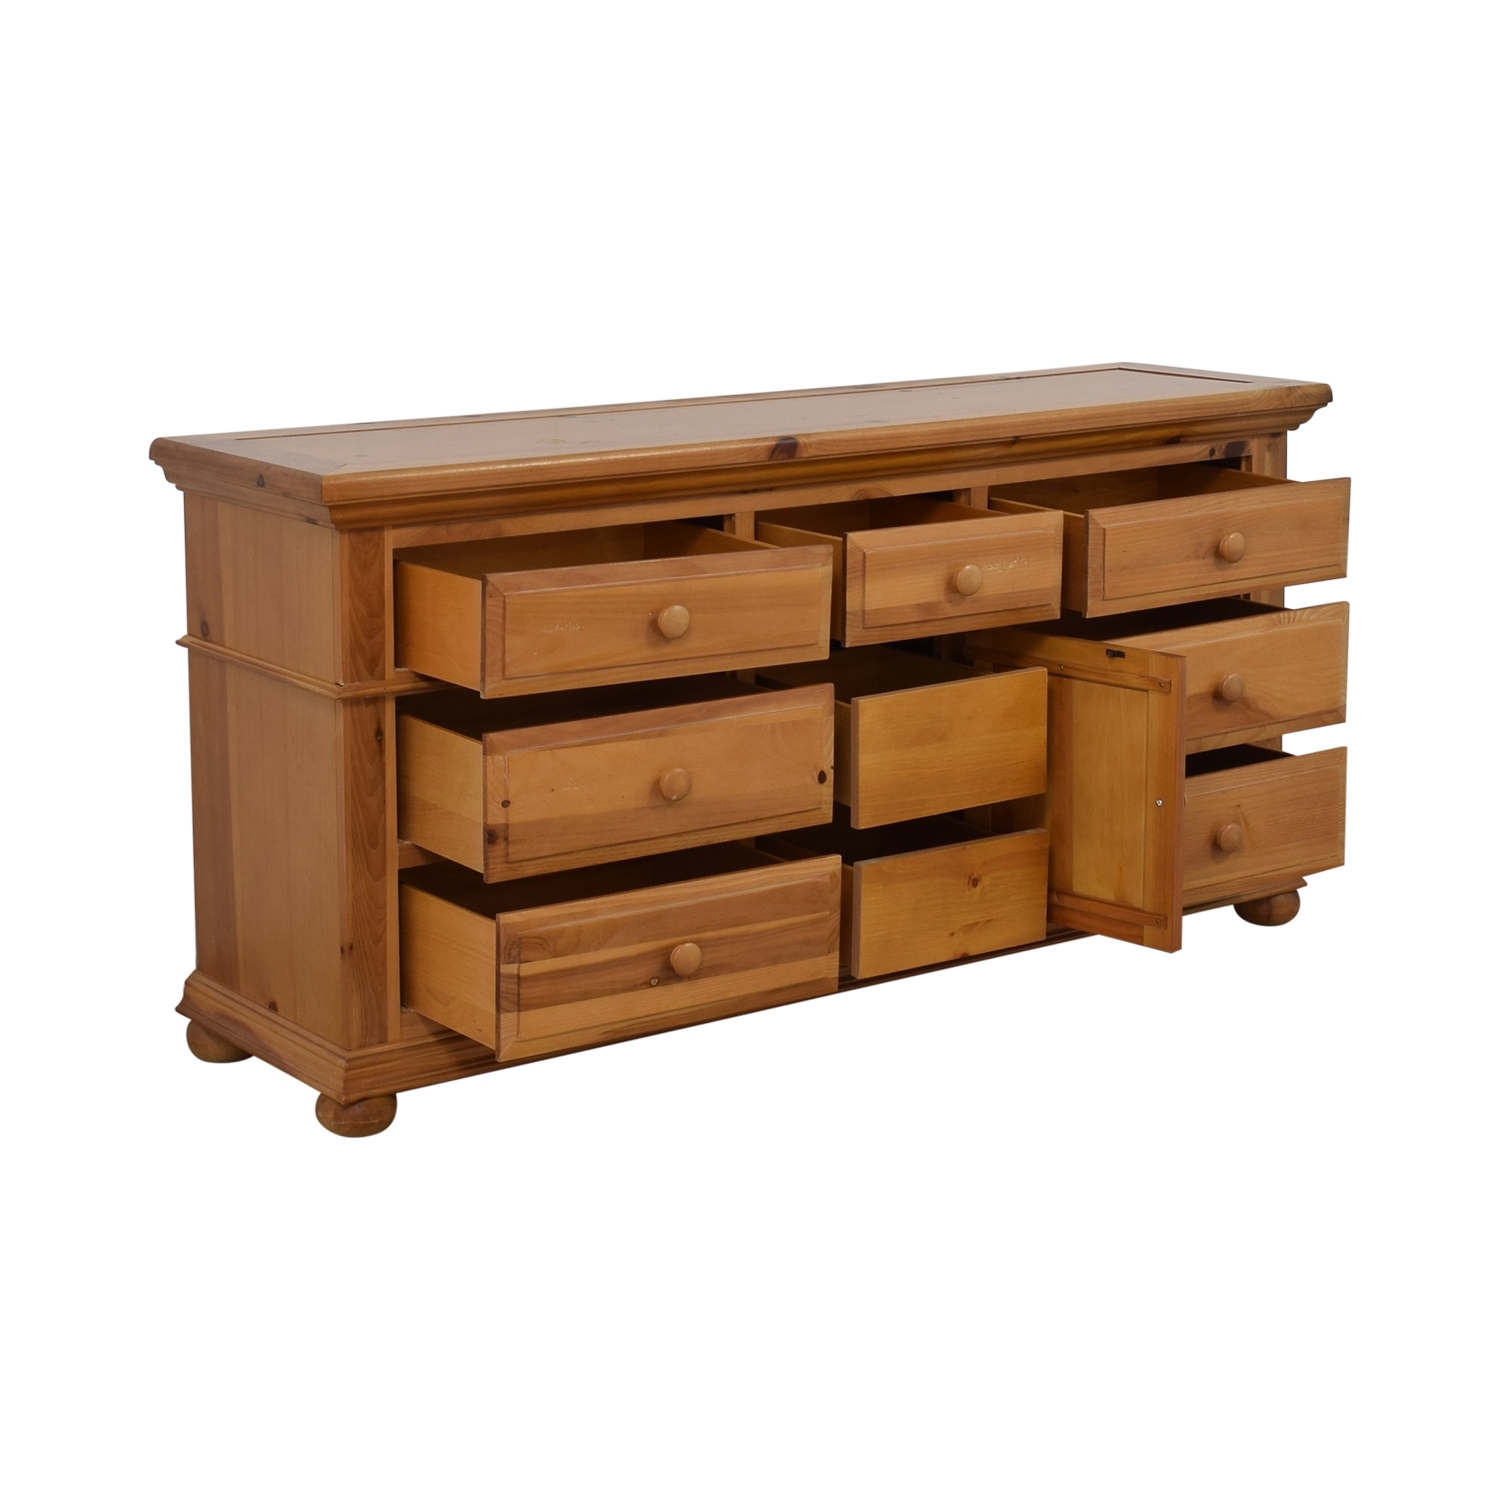 Broyhill Furniture Chest Of Drawers Storage